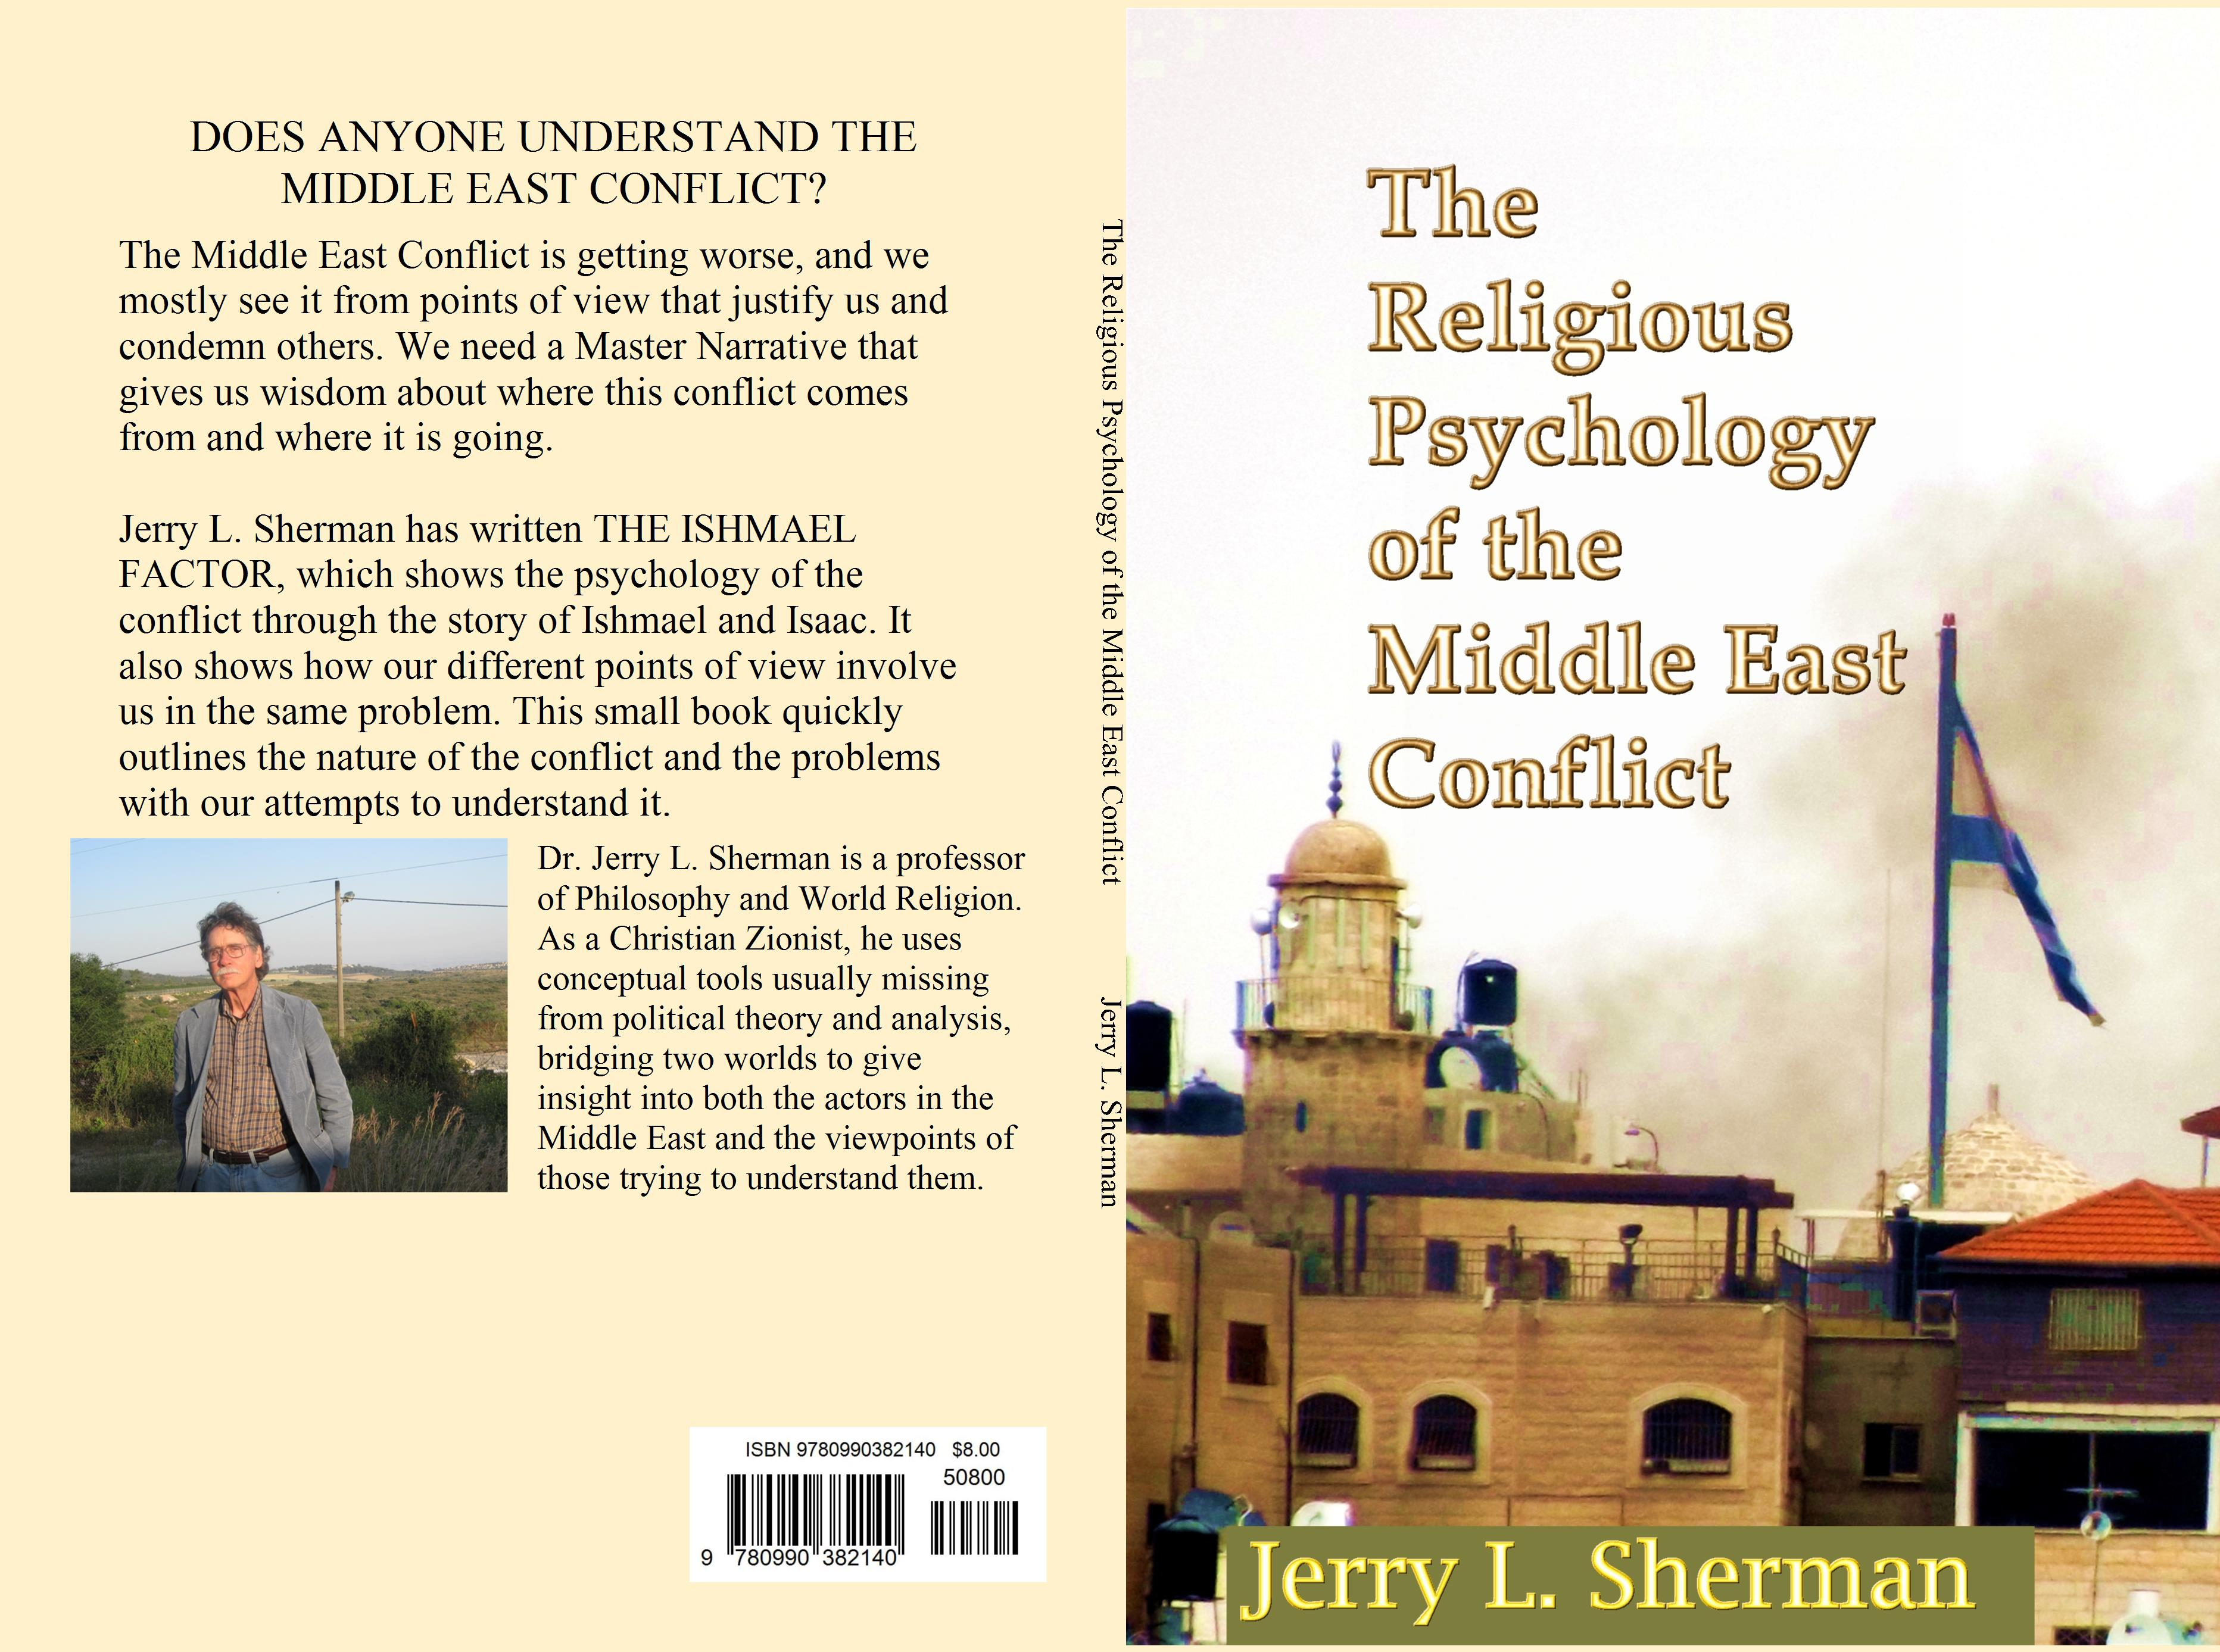 The Religious Psychology of the Middle East Conflict cover image